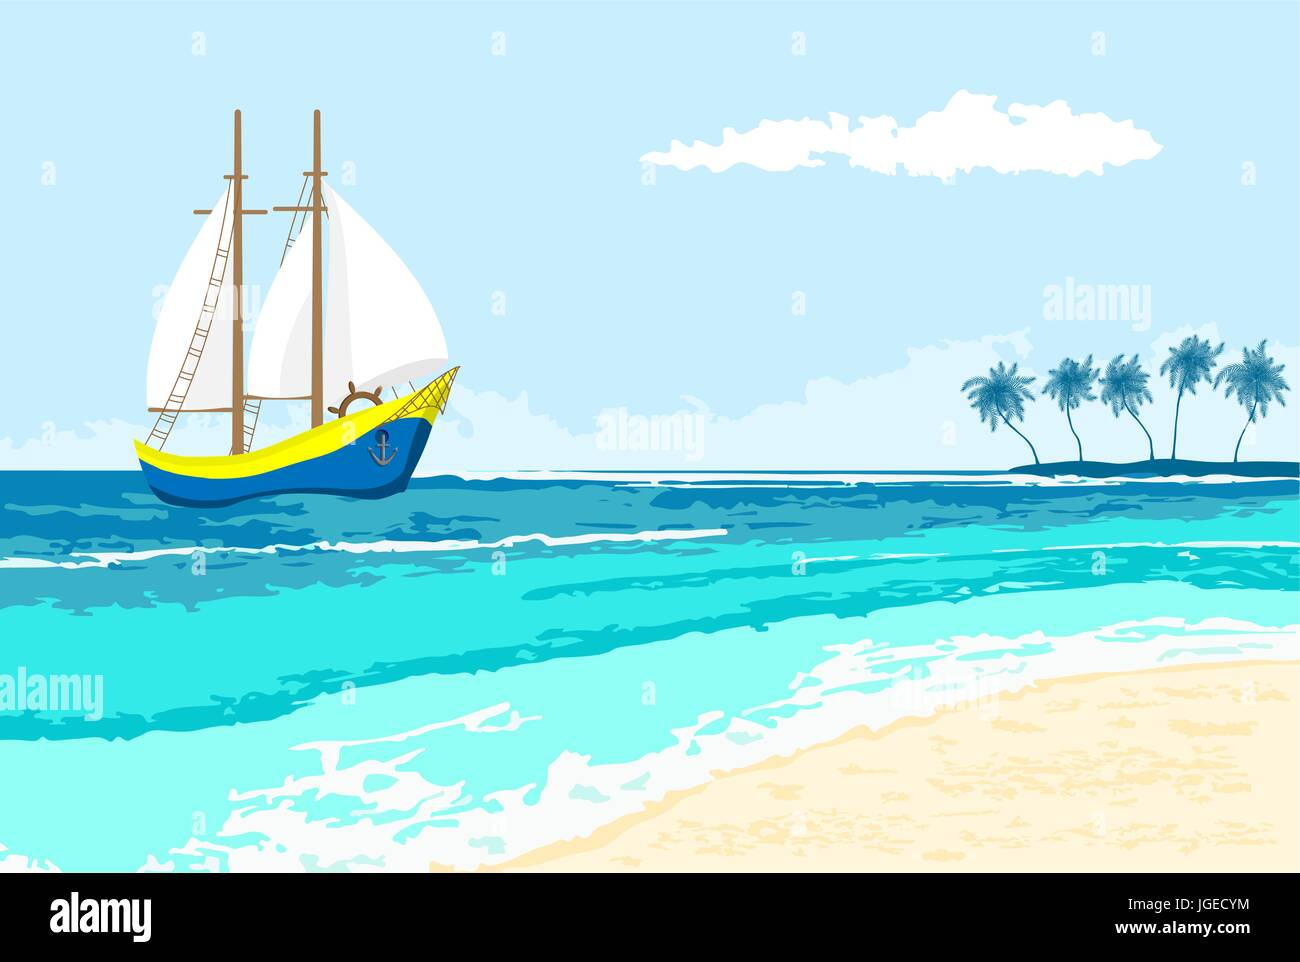 Summer sea view with cartoon sailboat and palms island seaside summer sea view with cartoon sailboat and palms island seaside background for flyer banner greeting card and invitation kristyandbryce Gallery